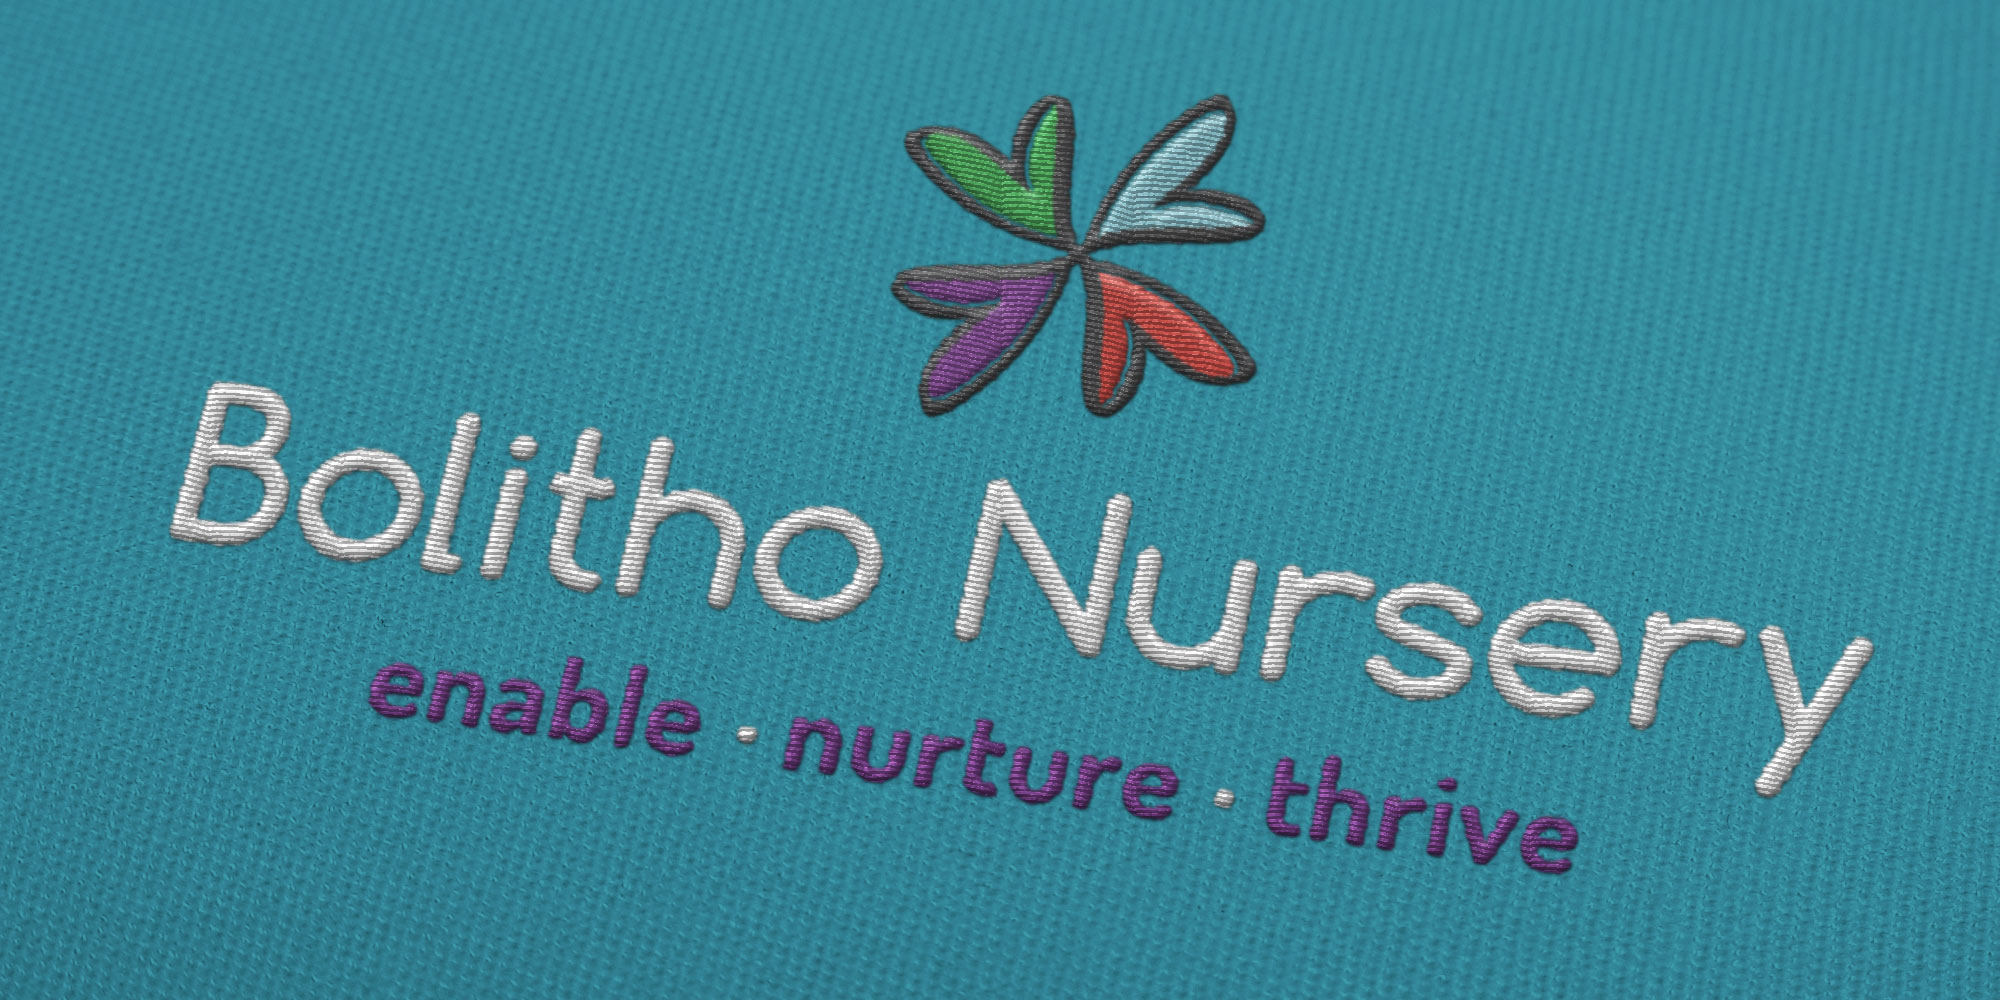 Bolitho Nursery Logo Design on Uniform